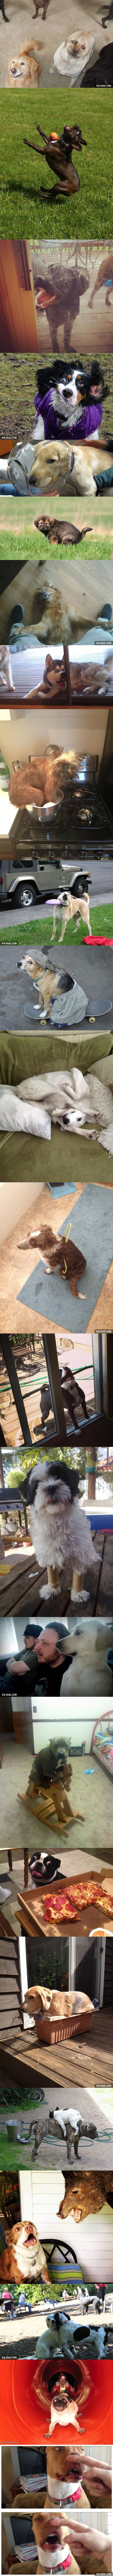 A hilarious compilation of awkward dog photos. These are my favorites thus far.